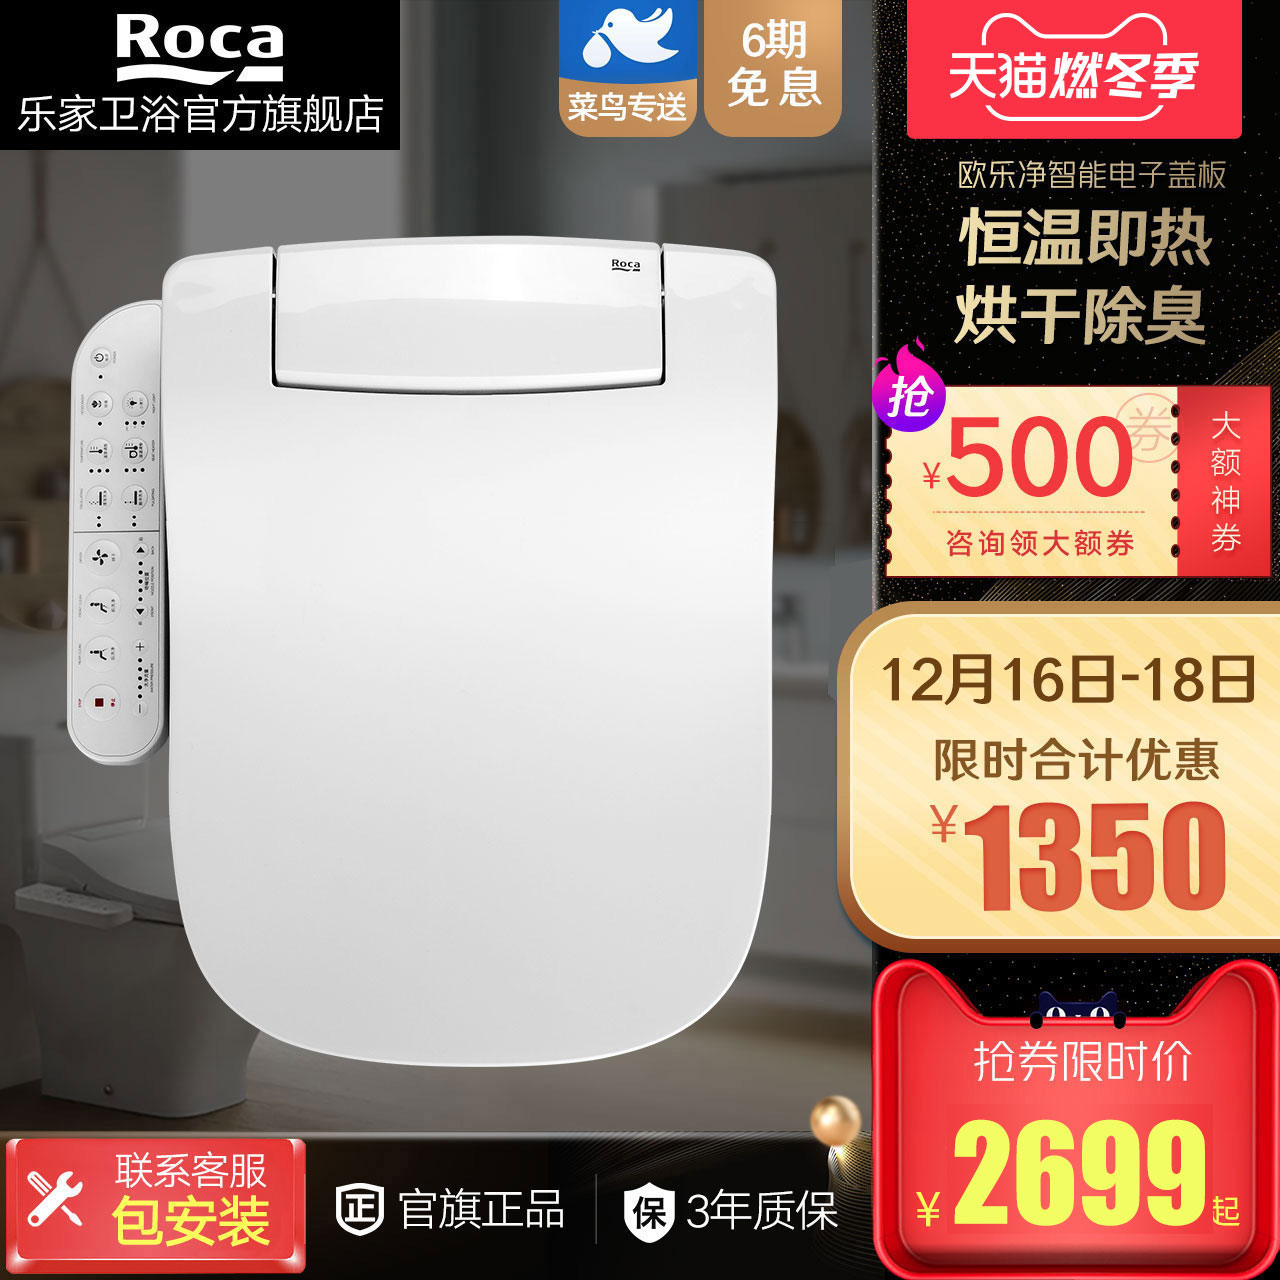 ROCA Lejia bathroom is hot smart toilet cover drying deodorization automatic home women's sanitary wash Lio Le net